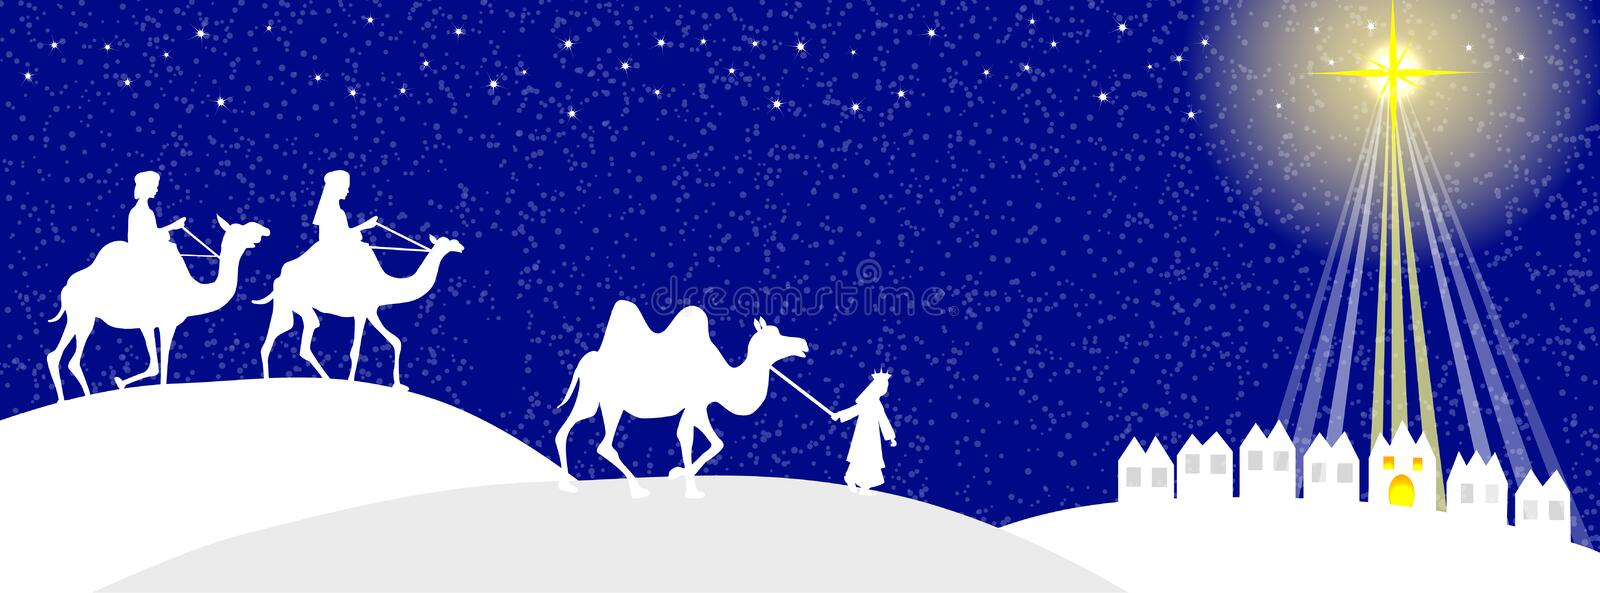 Silhouette de Wisemen illustration stock